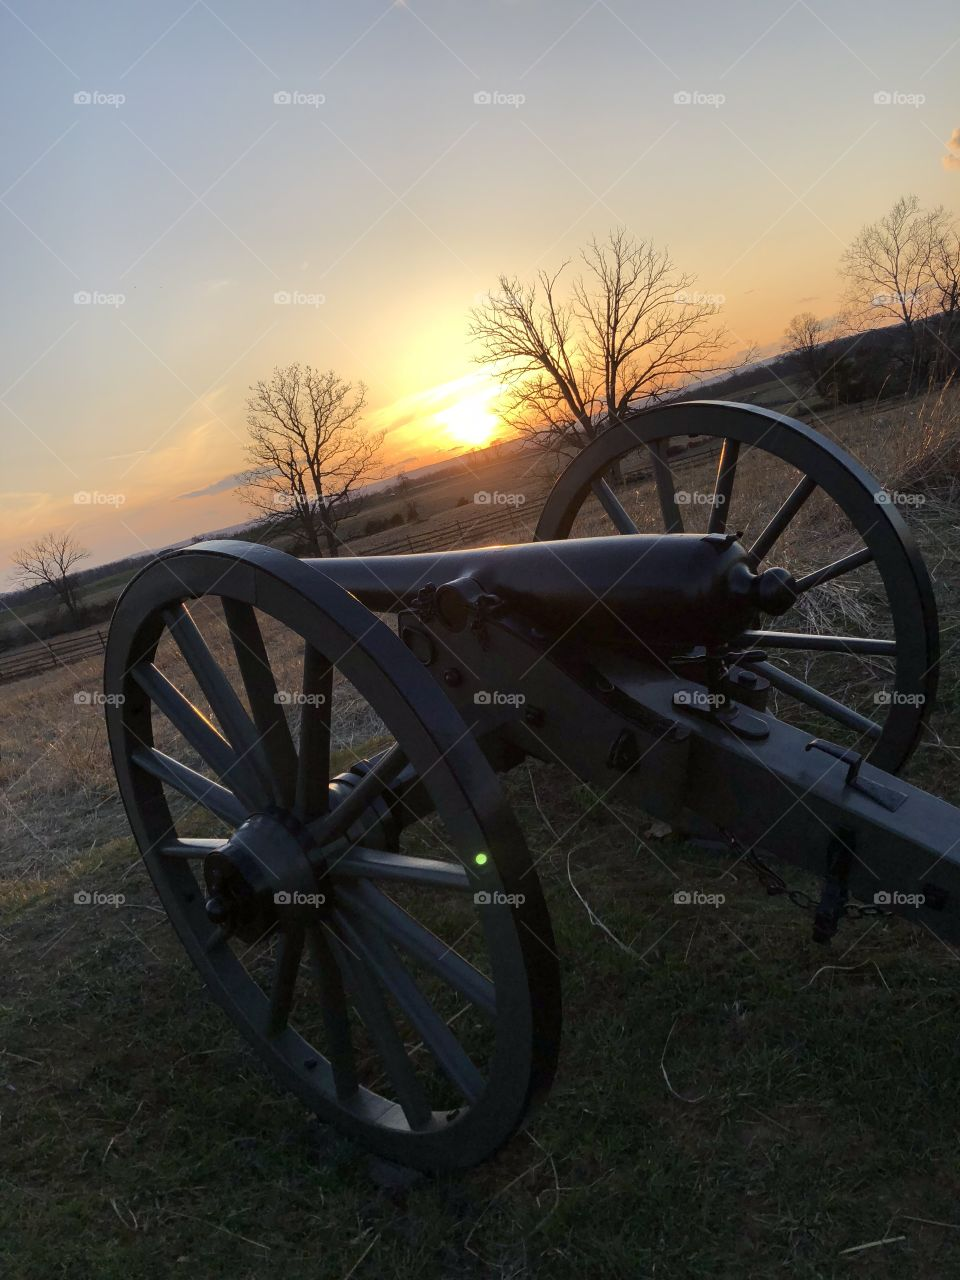 Cannon at sunset